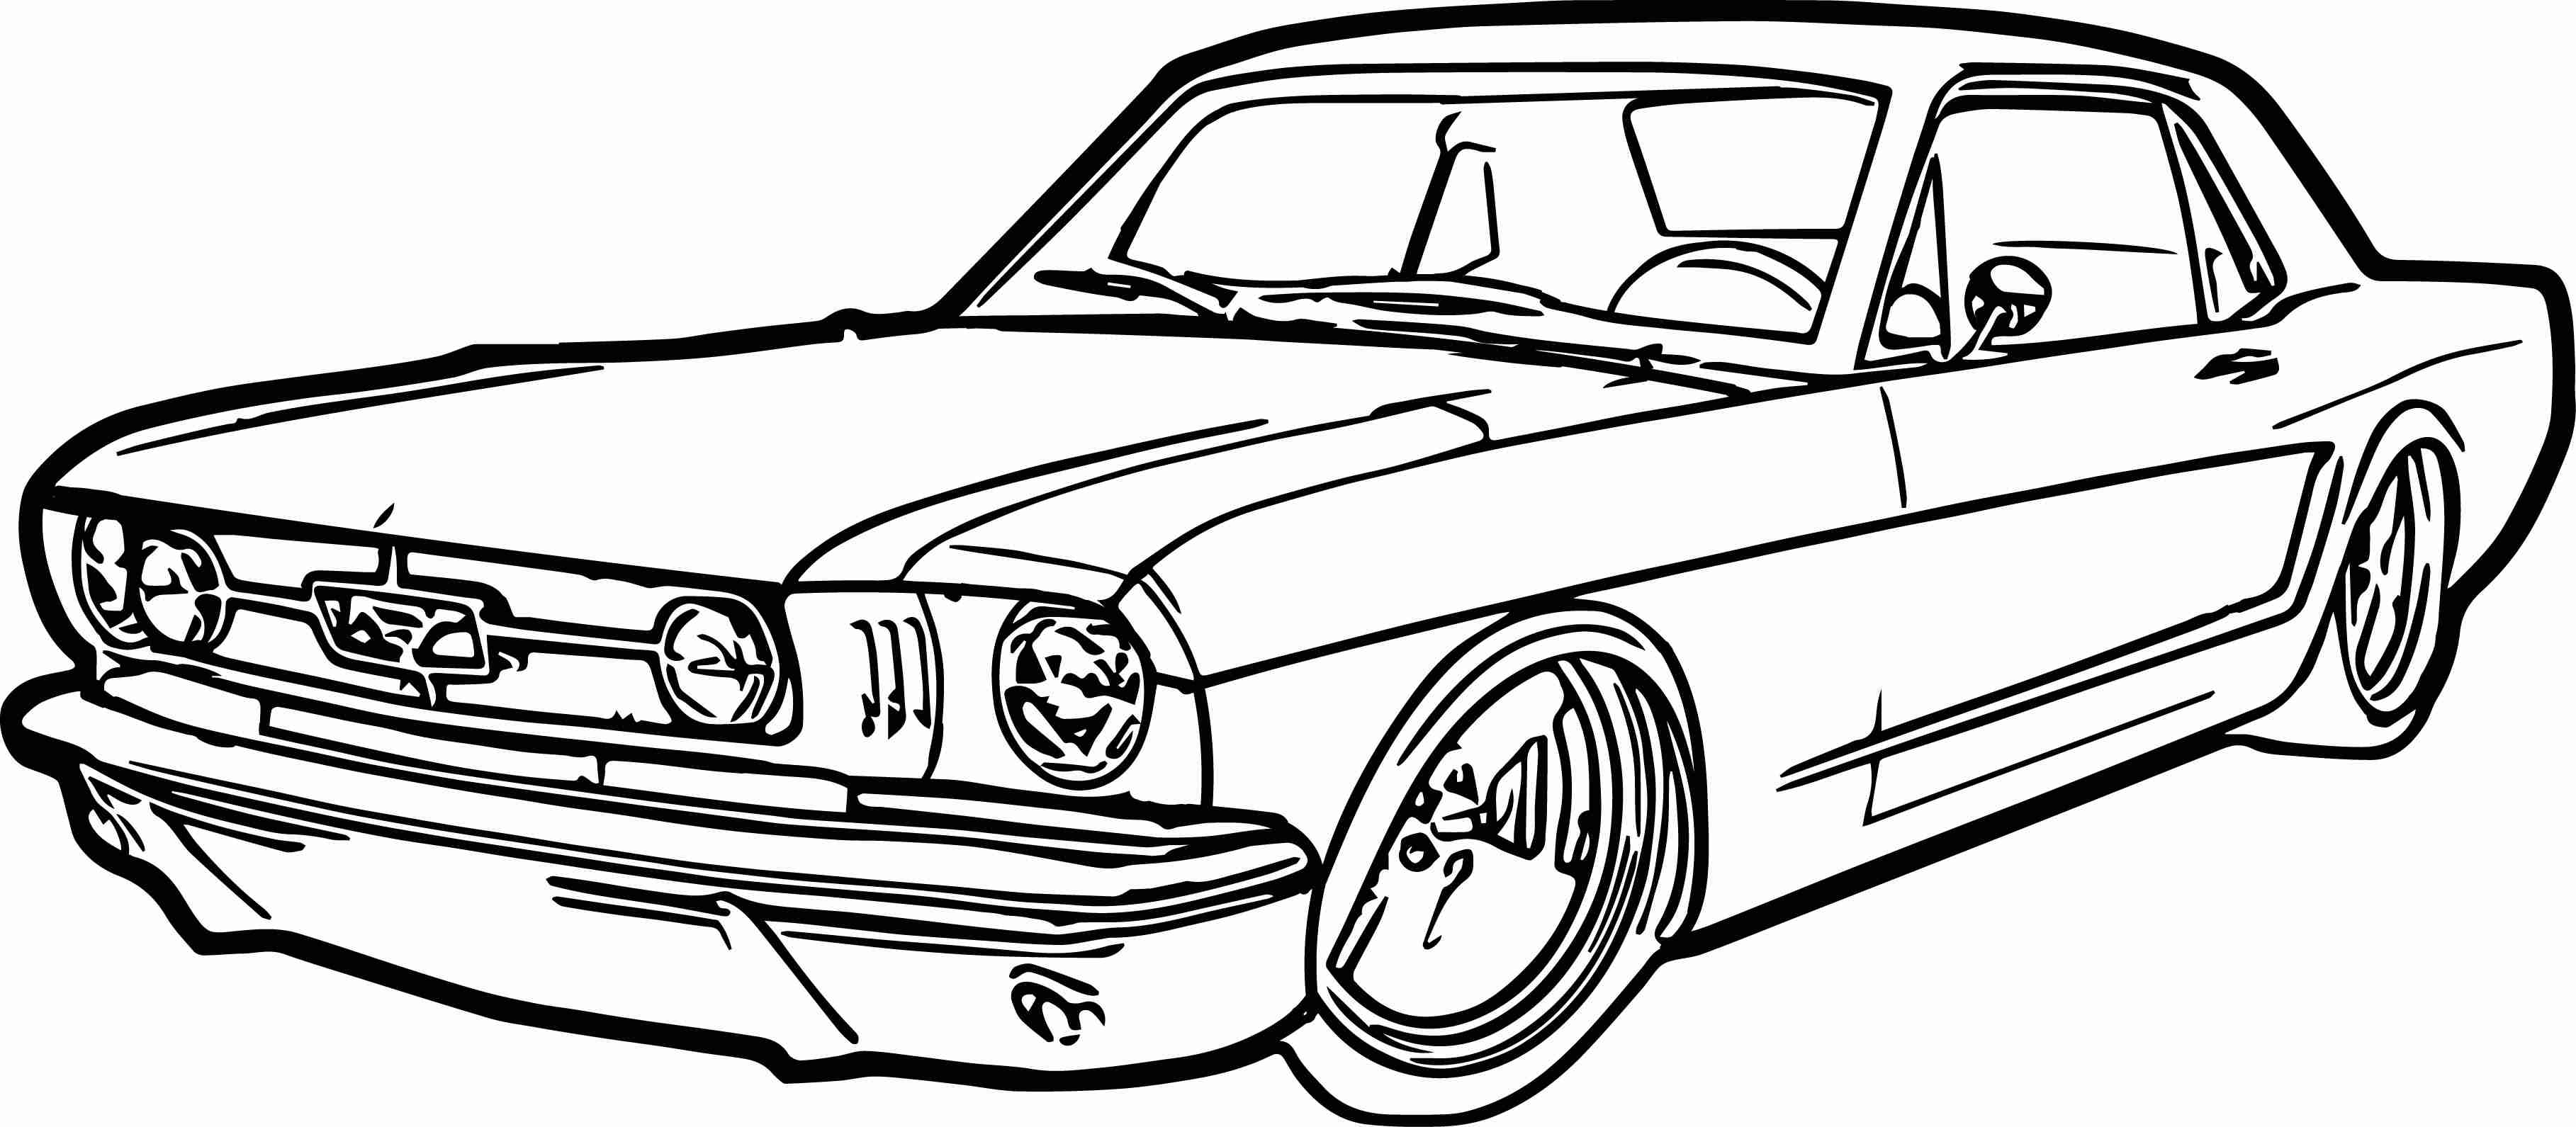 3635x1591 Ford Mustang Car Coloring Page Wecoloringpage Extraordinary Pages